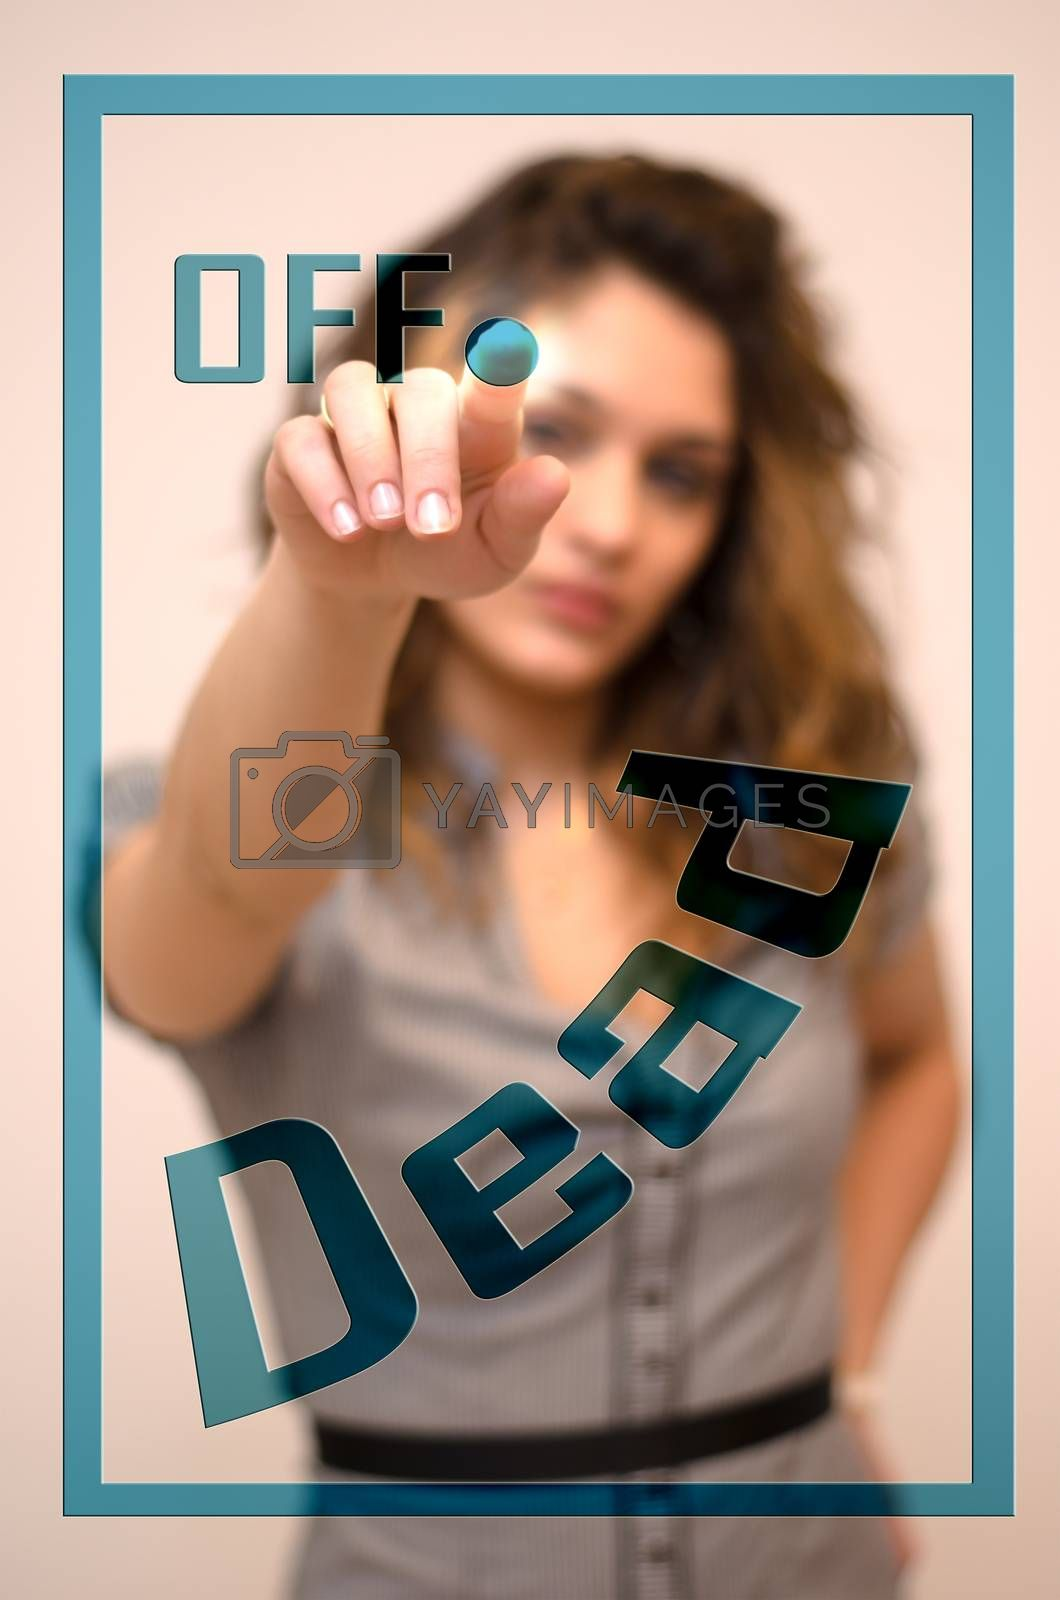 young woman turning off Dead on digital panel